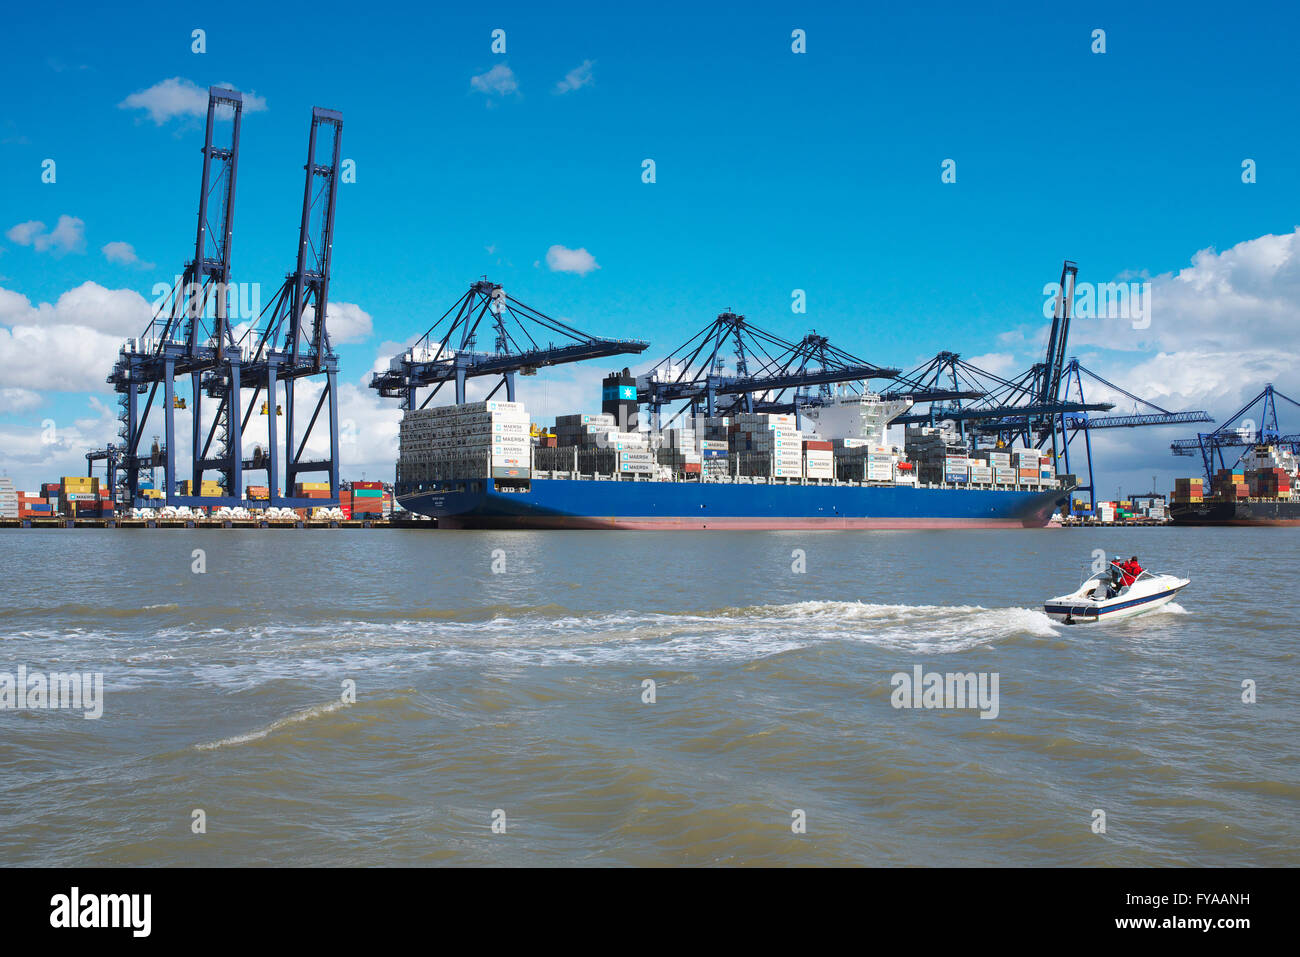 Small leisure boat motors on the North Sea past large container ships at the port of Felixstowe on the Suffolk Coast - Stock Image